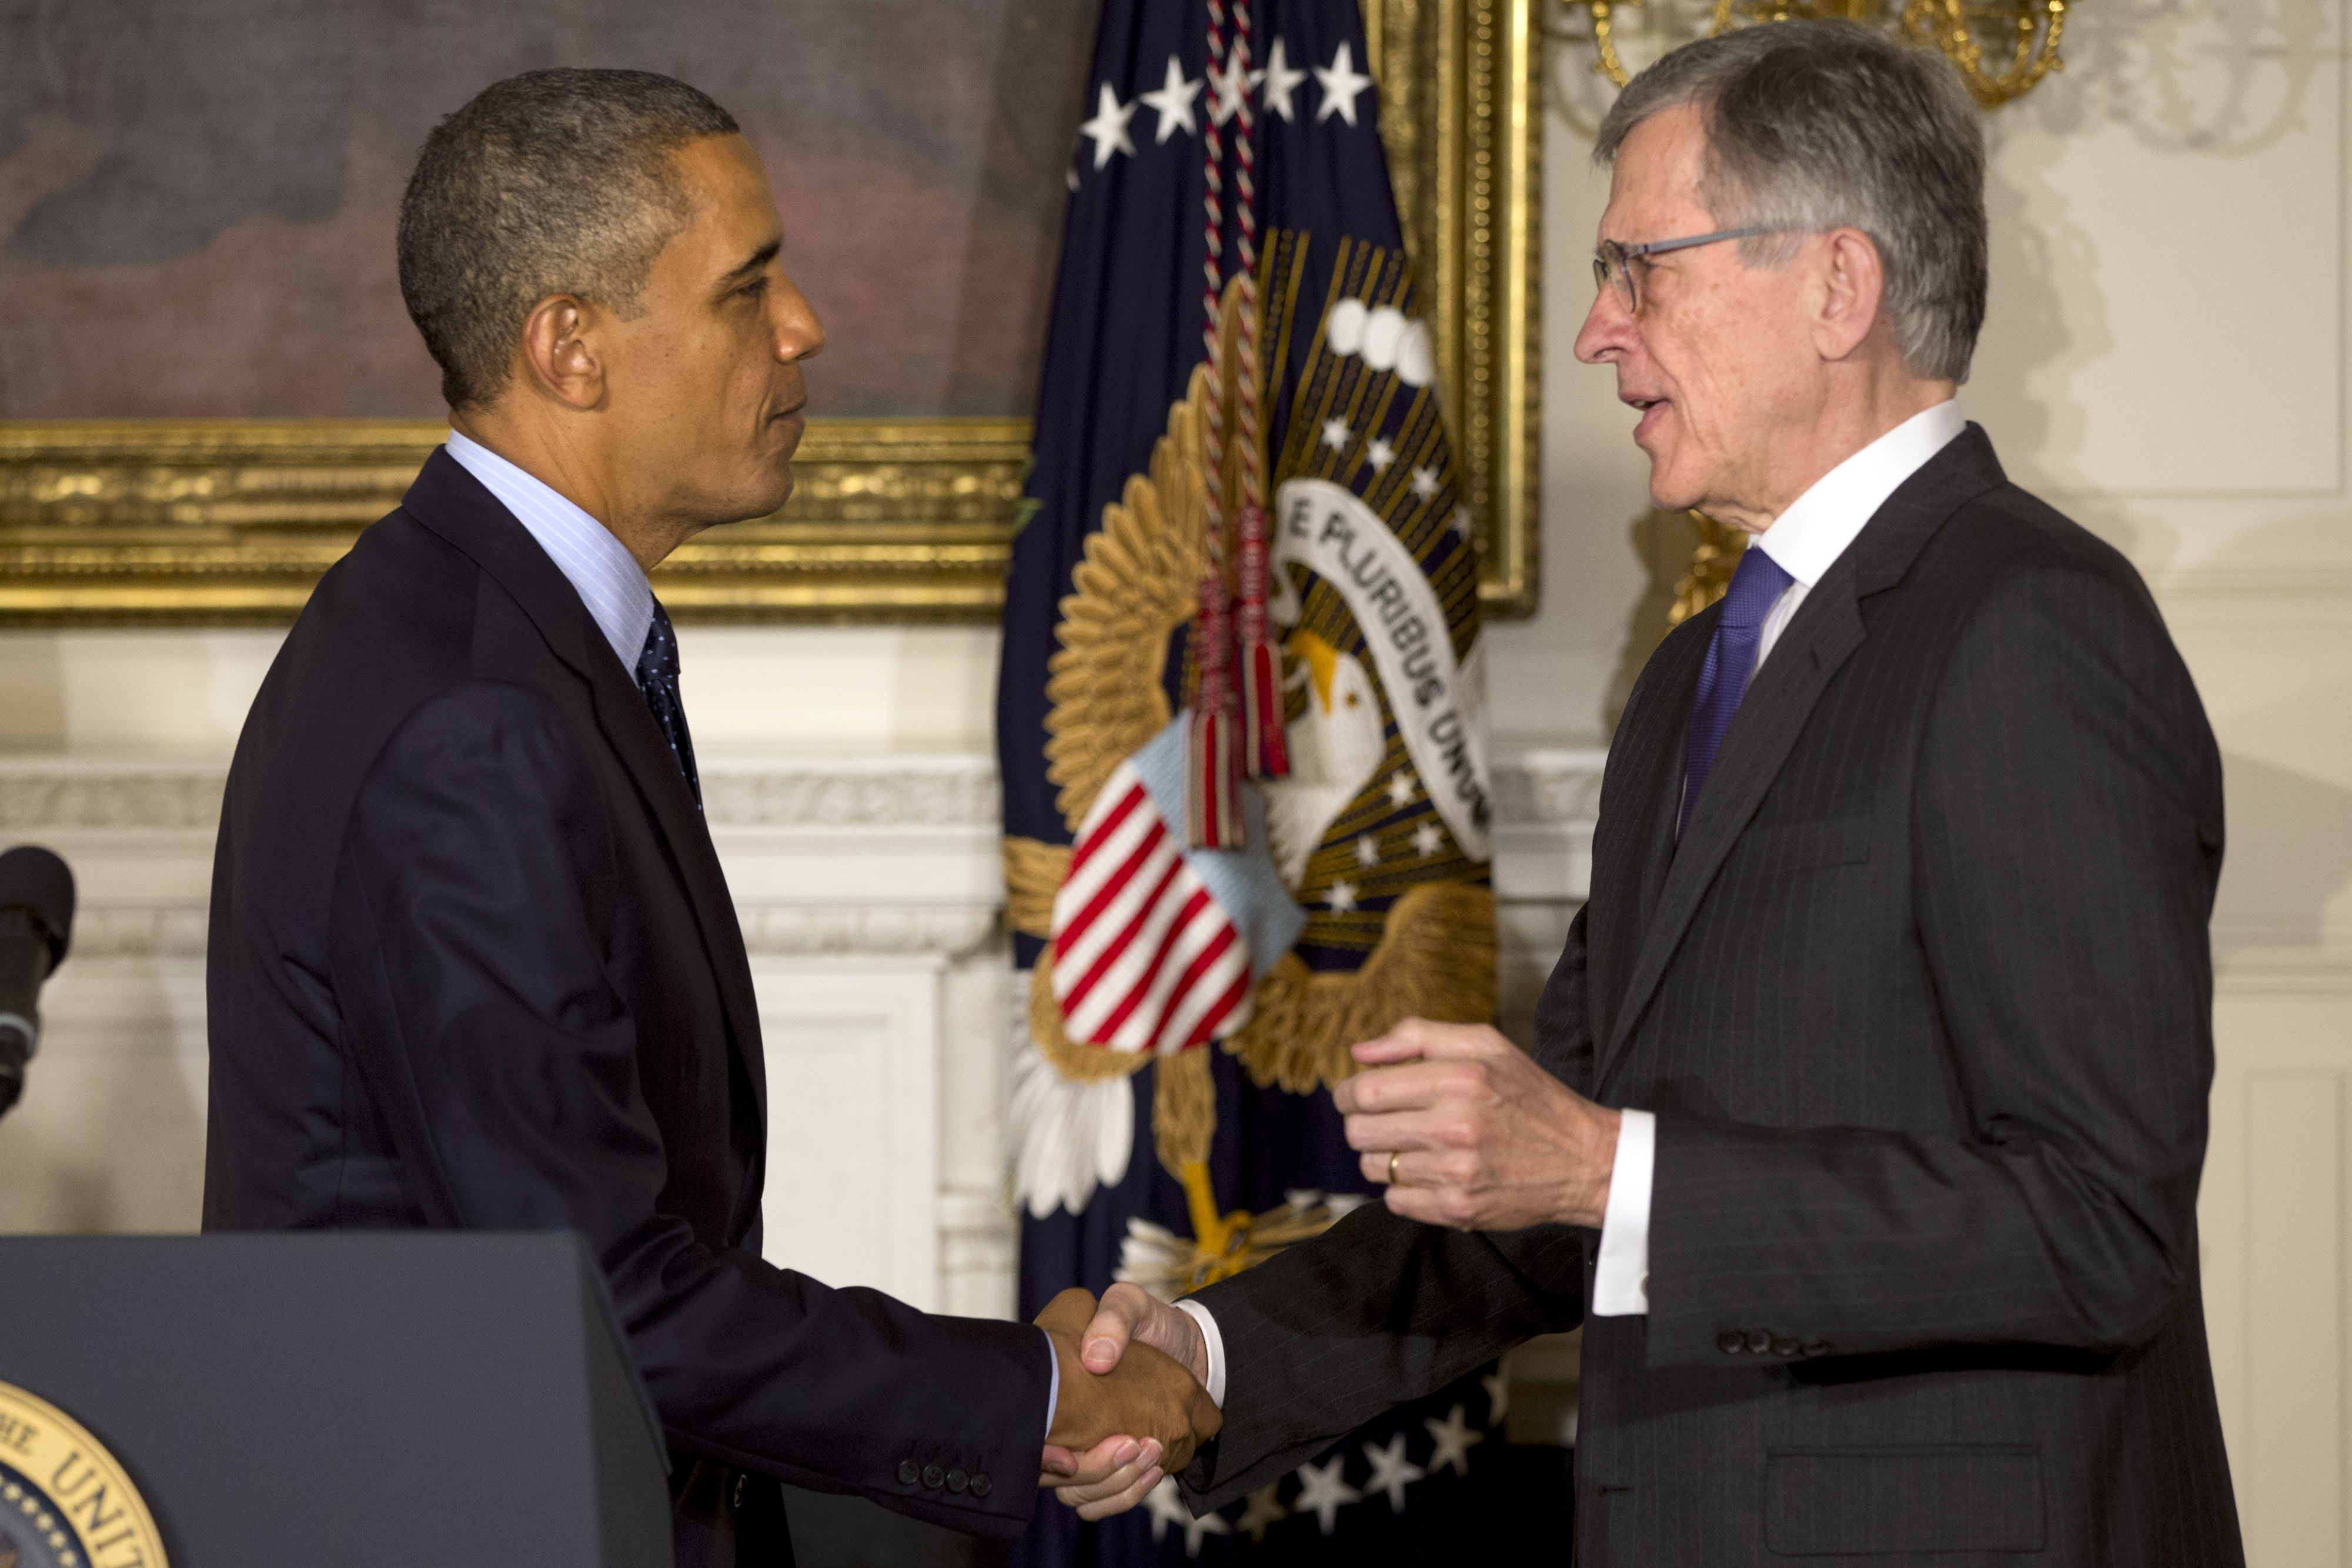 In this May 1, 2013 file photo, President Barack Obama shakes hands with then nominee for Federal Communications Commission, Tom Wheeler, in the State Dining Room of the White House in Washington.